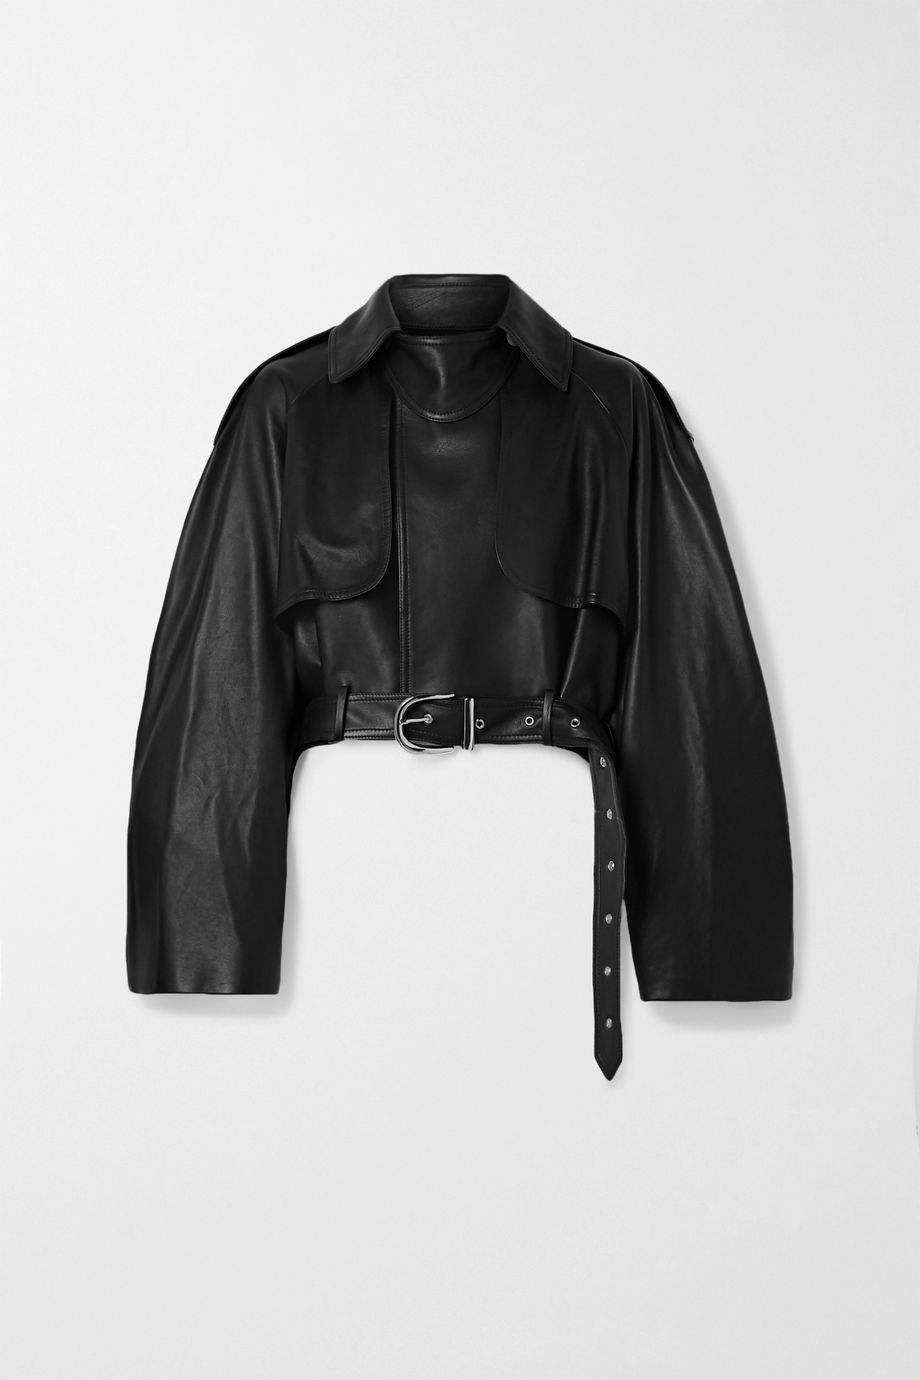 Khaite Krista oversized belted leather jacket